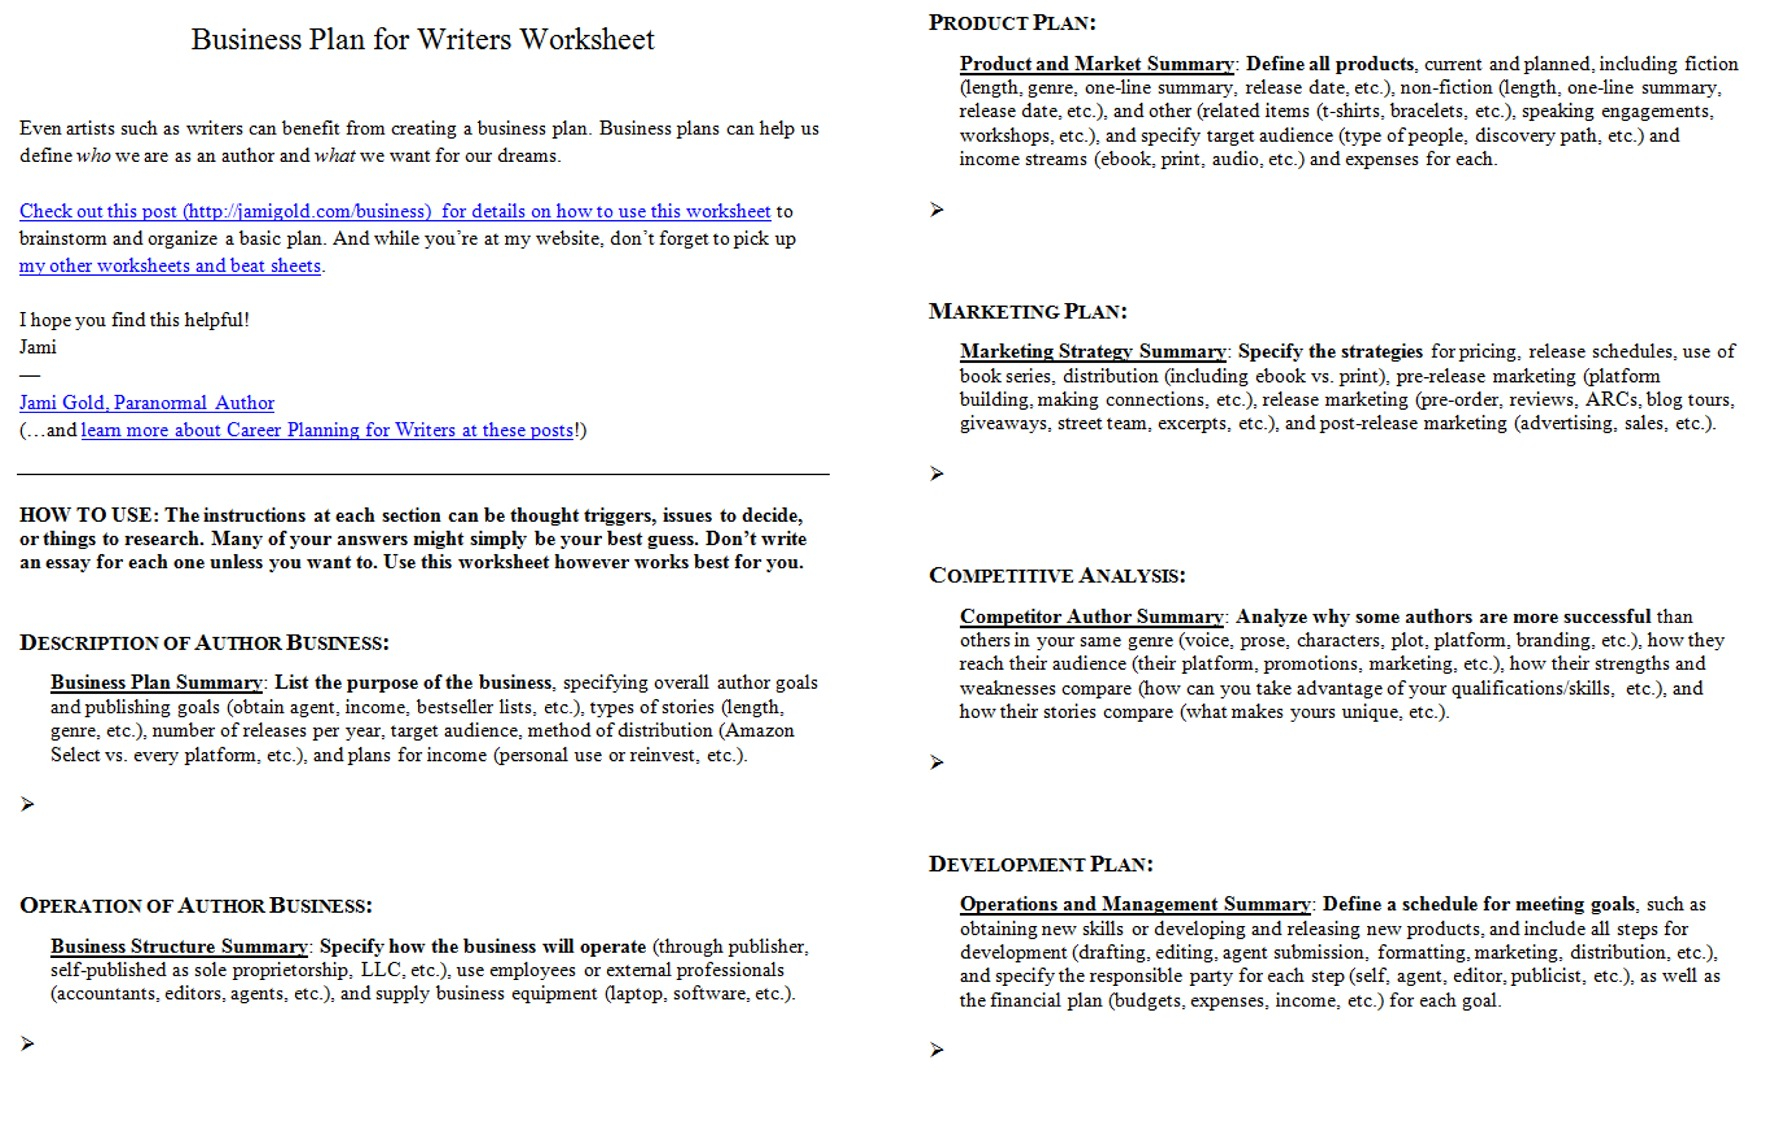 Proatmealus  Pleasing Worksheets For Writers  Jami Gold Paranormal Author With Great Screen Shot Of Both Pages Of The Business Plan For Writers Worksheet With Awesome Electricity Worksheets Also Chloroplasts And Mitochondria Worksheet Answers In Addition Two Dimensional Motion And Vectors Worksheet Answers And Naming Ionic Compounds Practice Worksheet Answers As Well As X And Y Intercepts Worksheet Additionally Math Worksheet Answers From Jamigoldcom With Proatmealus  Great Worksheets For Writers  Jami Gold Paranormal Author With Awesome Screen Shot Of Both Pages Of The Business Plan For Writers Worksheet And Pleasing Electricity Worksheets Also Chloroplasts And Mitochondria Worksheet Answers In Addition Two Dimensional Motion And Vectors Worksheet Answers From Jamigoldcom